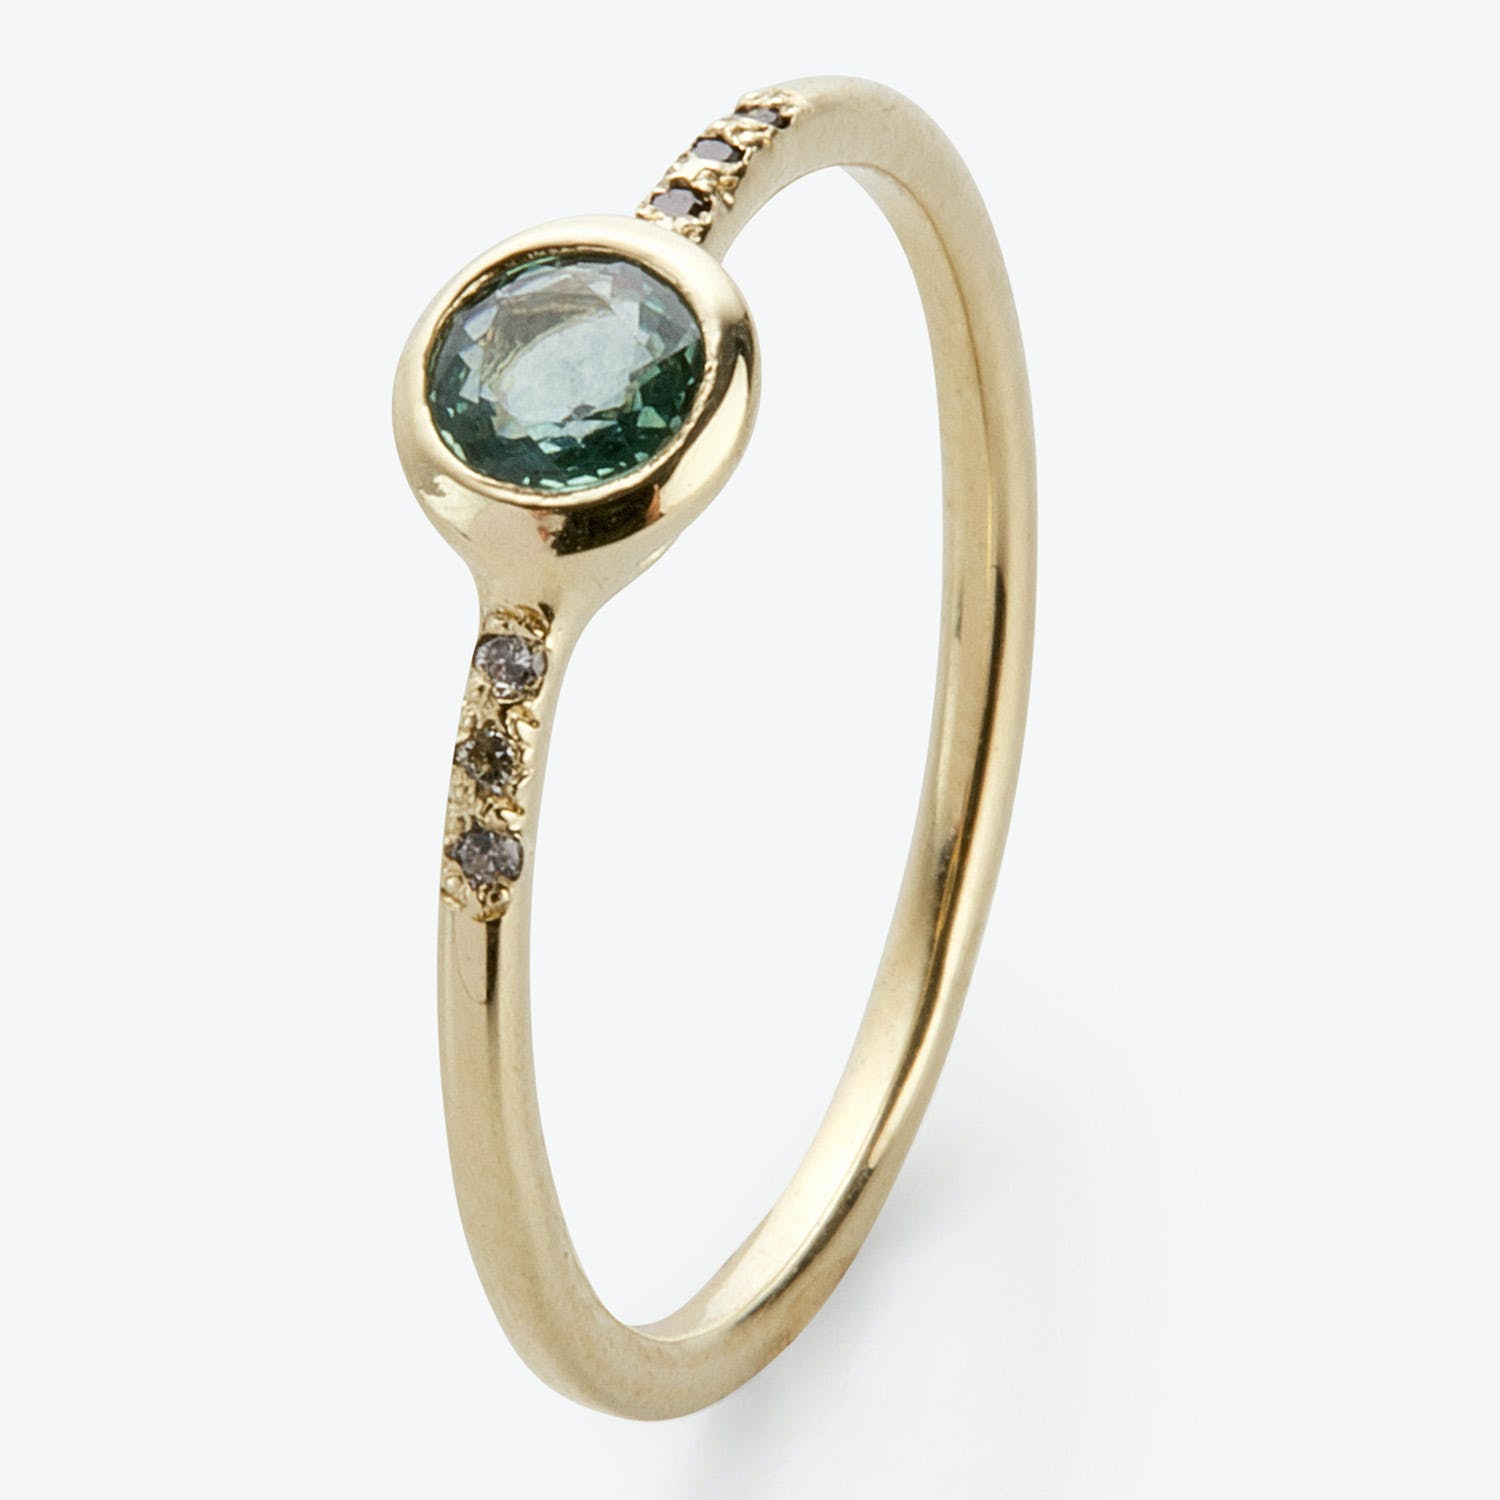 Scosha Midday Ring Blue Sapphire, Black Diamond, Gold